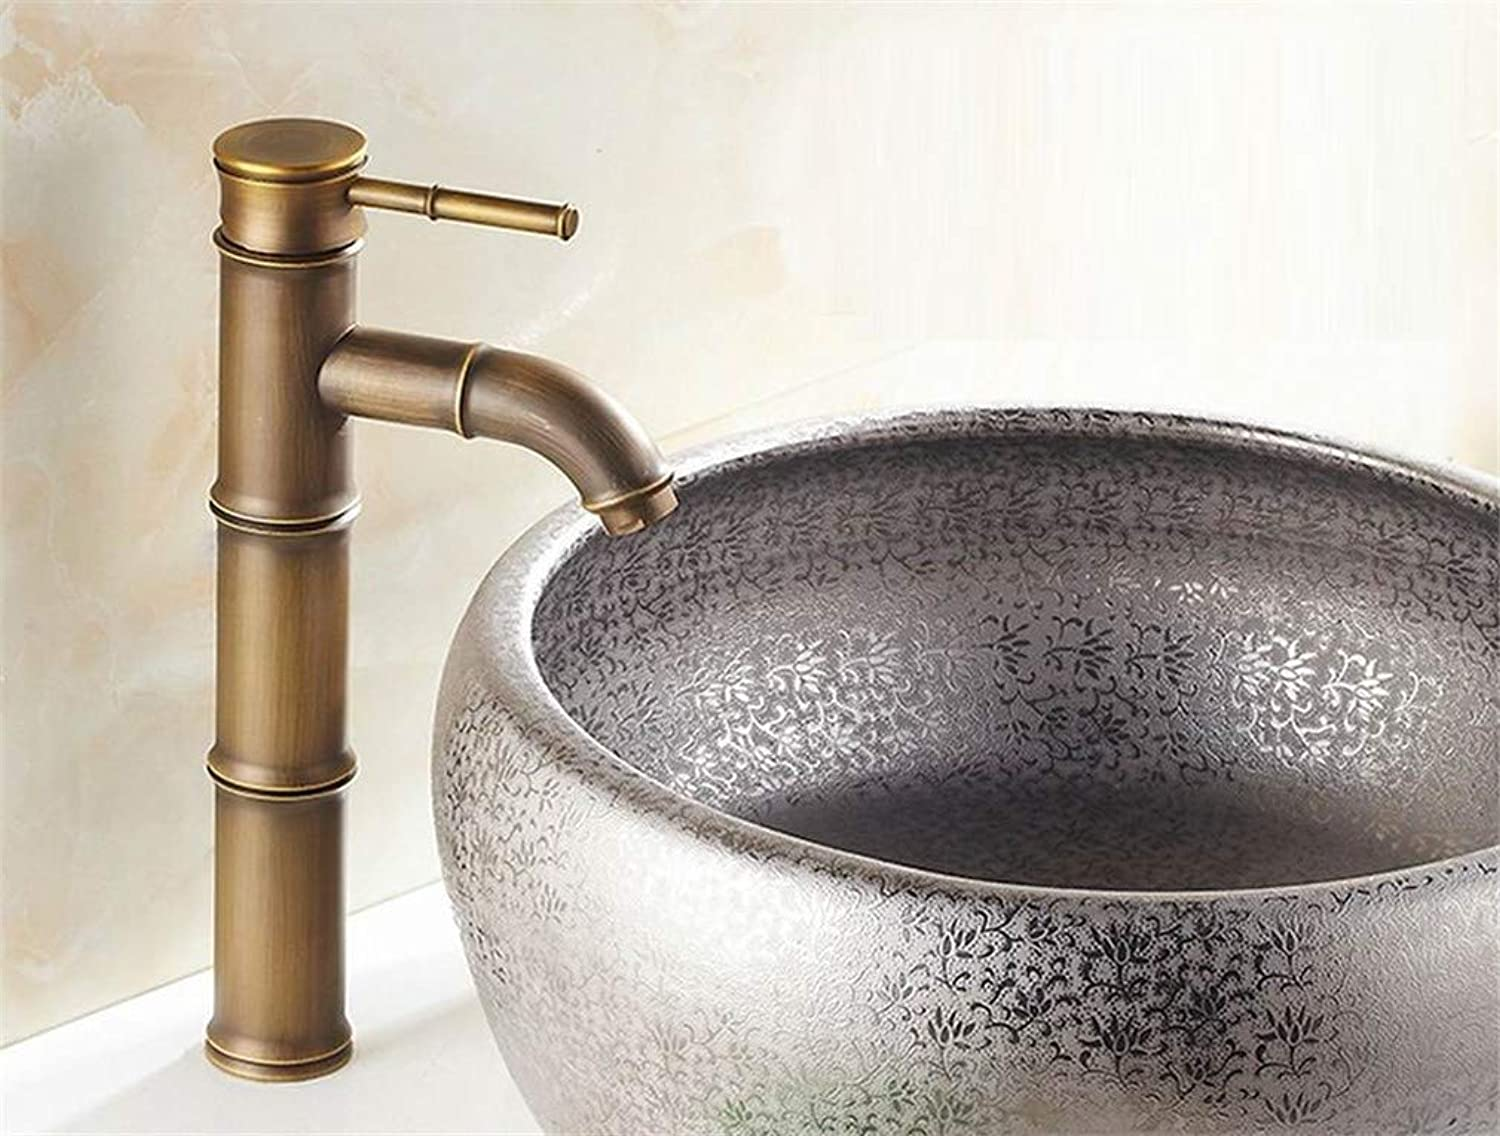 Tap Mixer Kitchen Sink Taps Deck Mounted Single Handle Bamboo Style Bathroom Sink Mixer Faucet Bronze High Quality Popular Hot and Cold Water